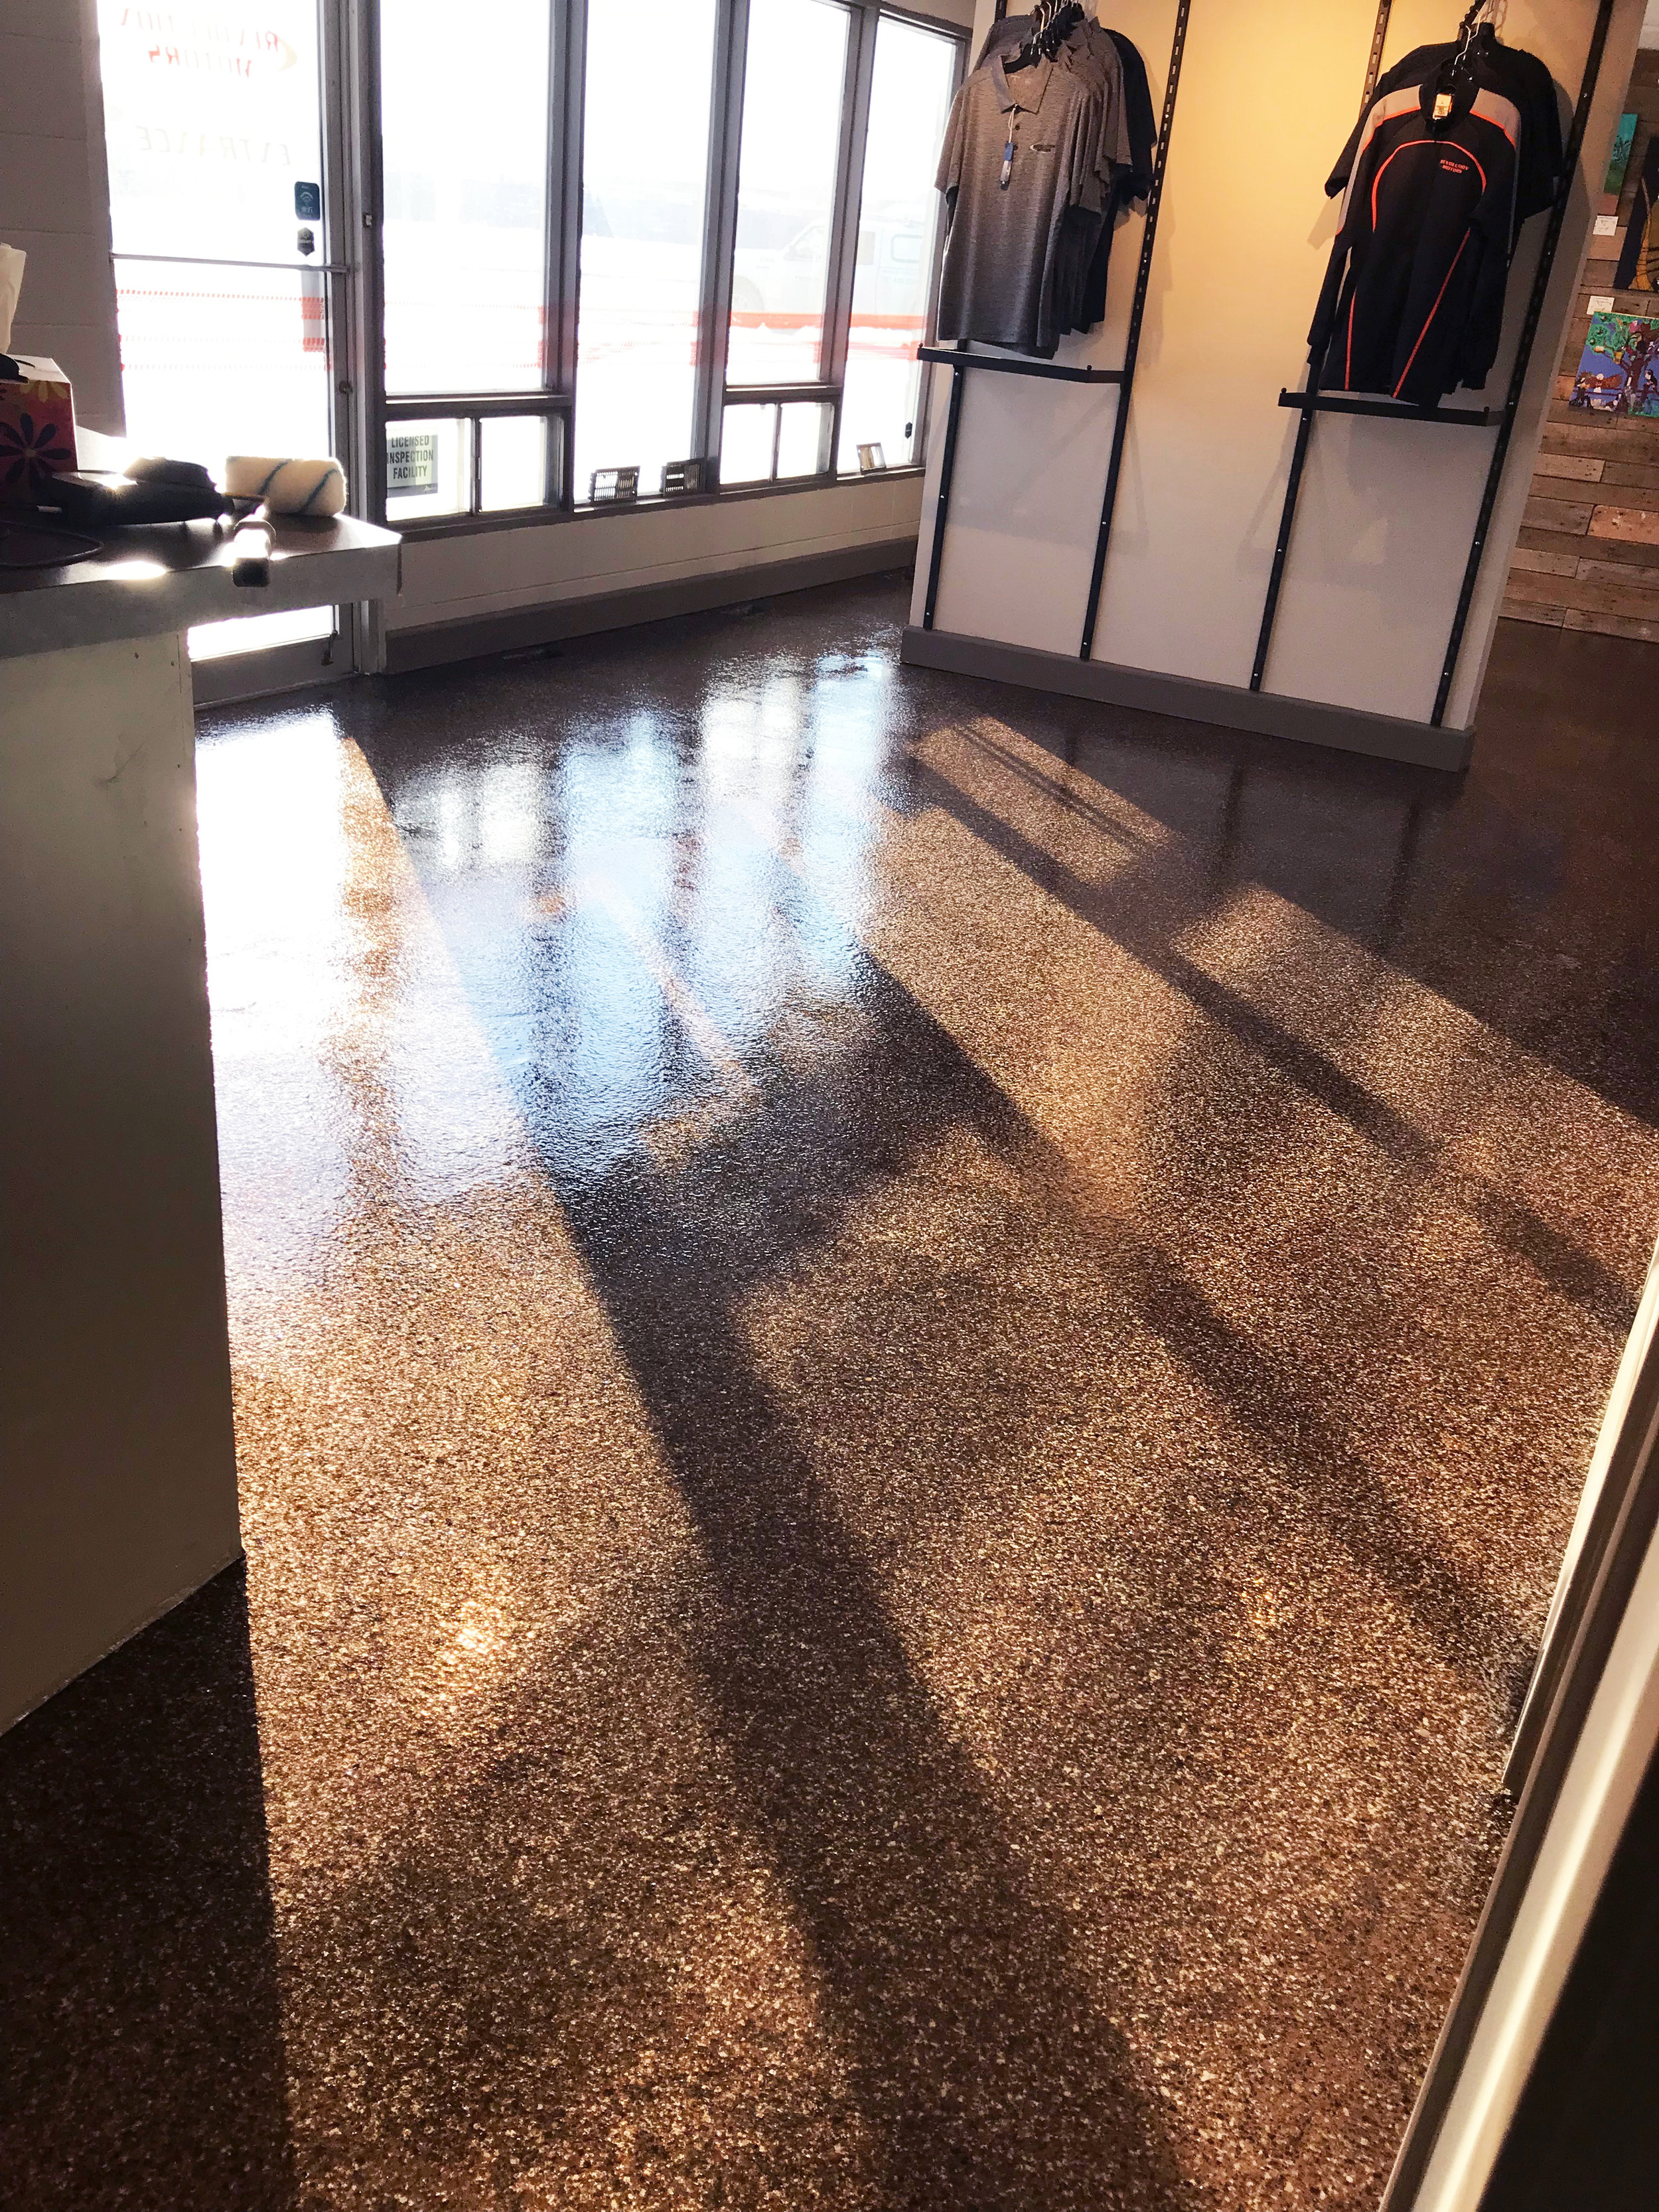 Floor is now easy to clean and will keep its shine.